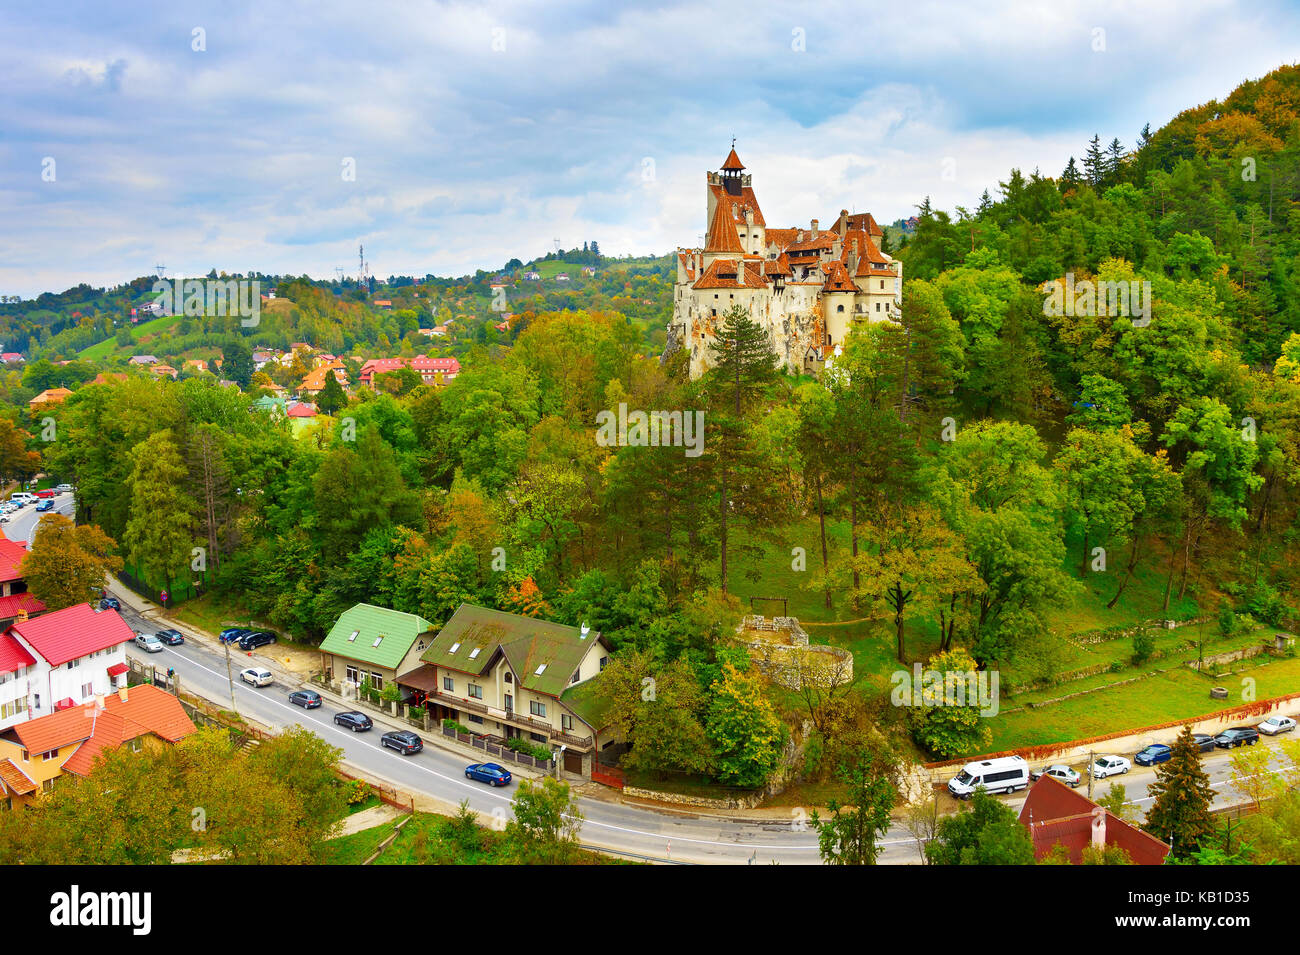 Famous Castle of Bran, known as Count Dracula Castle. Romania - Stock Image